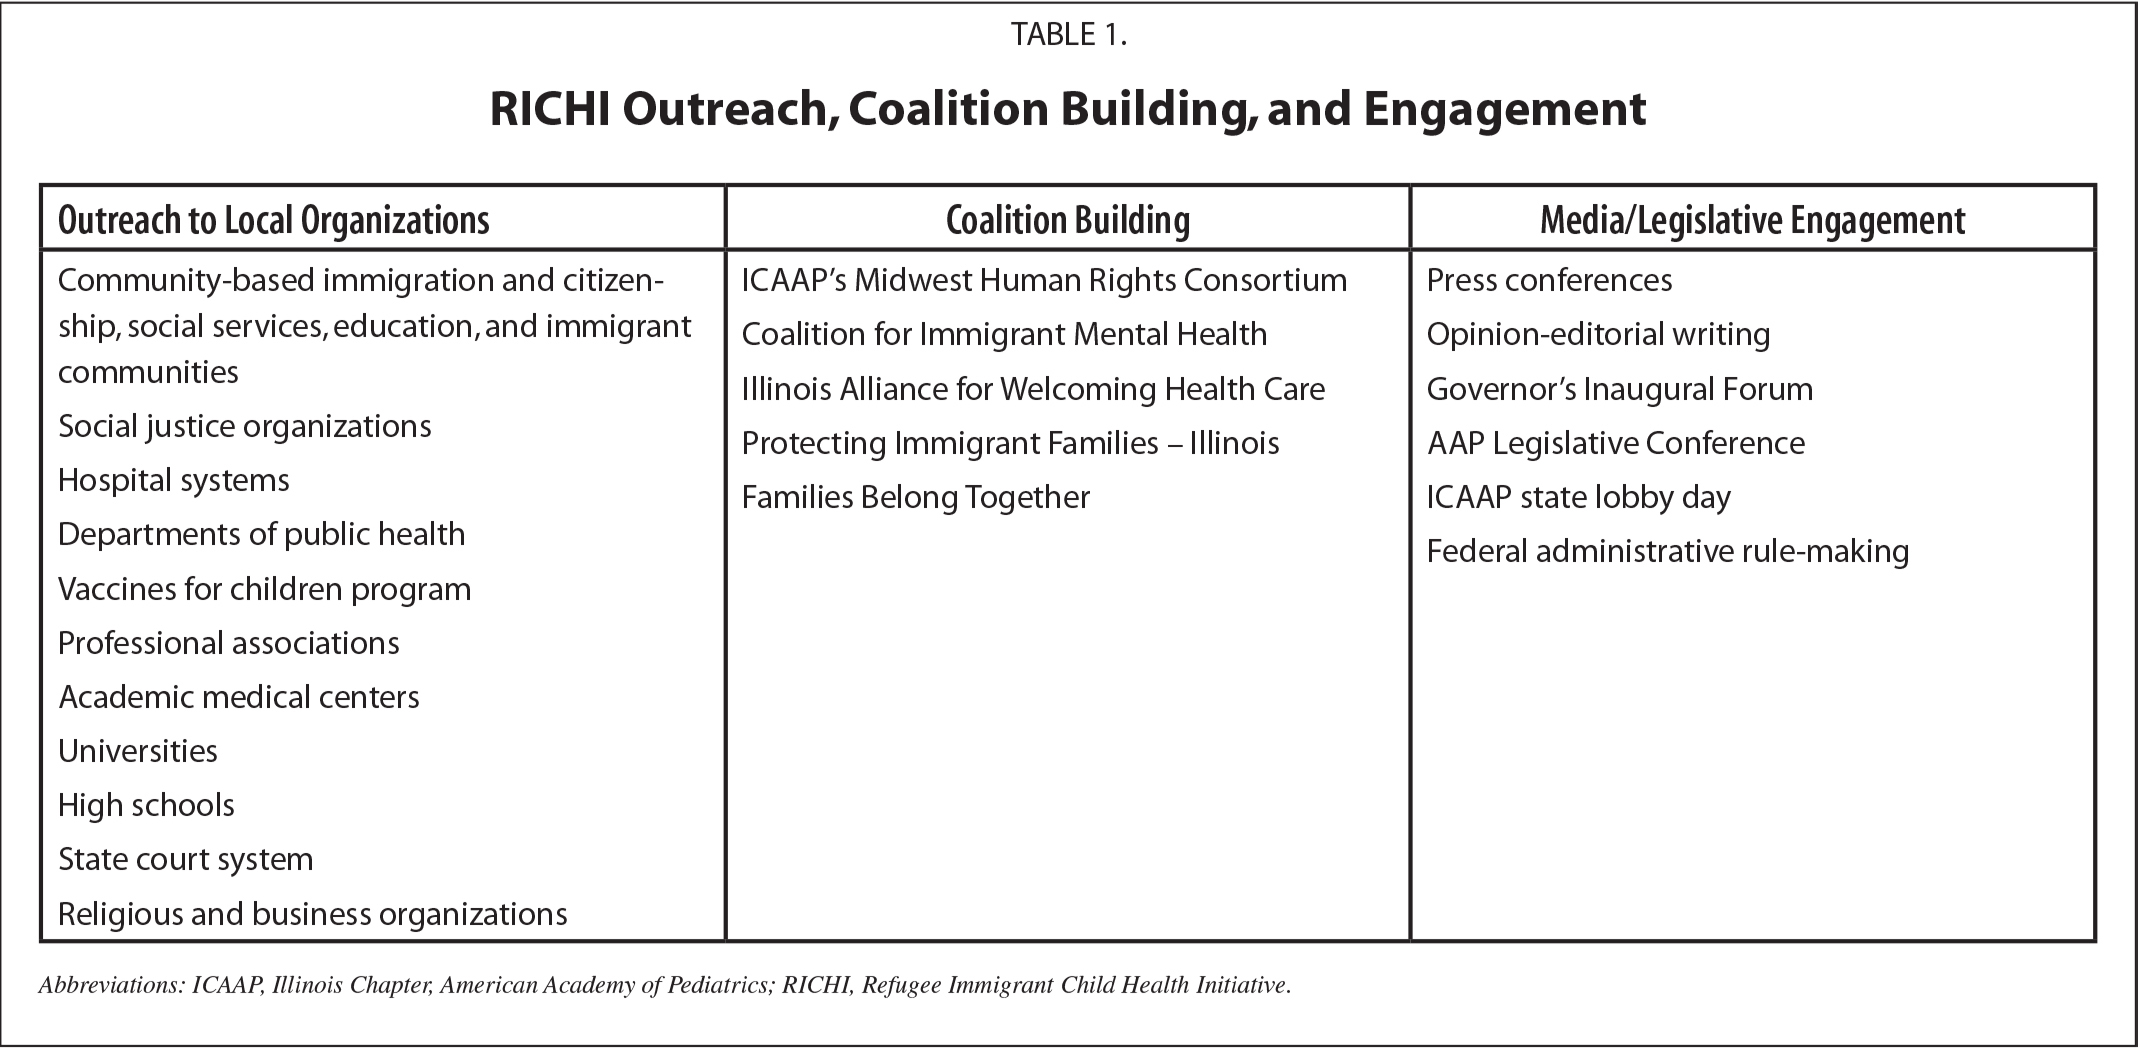 RICHI Outreach, Coalition Building, and Engagement